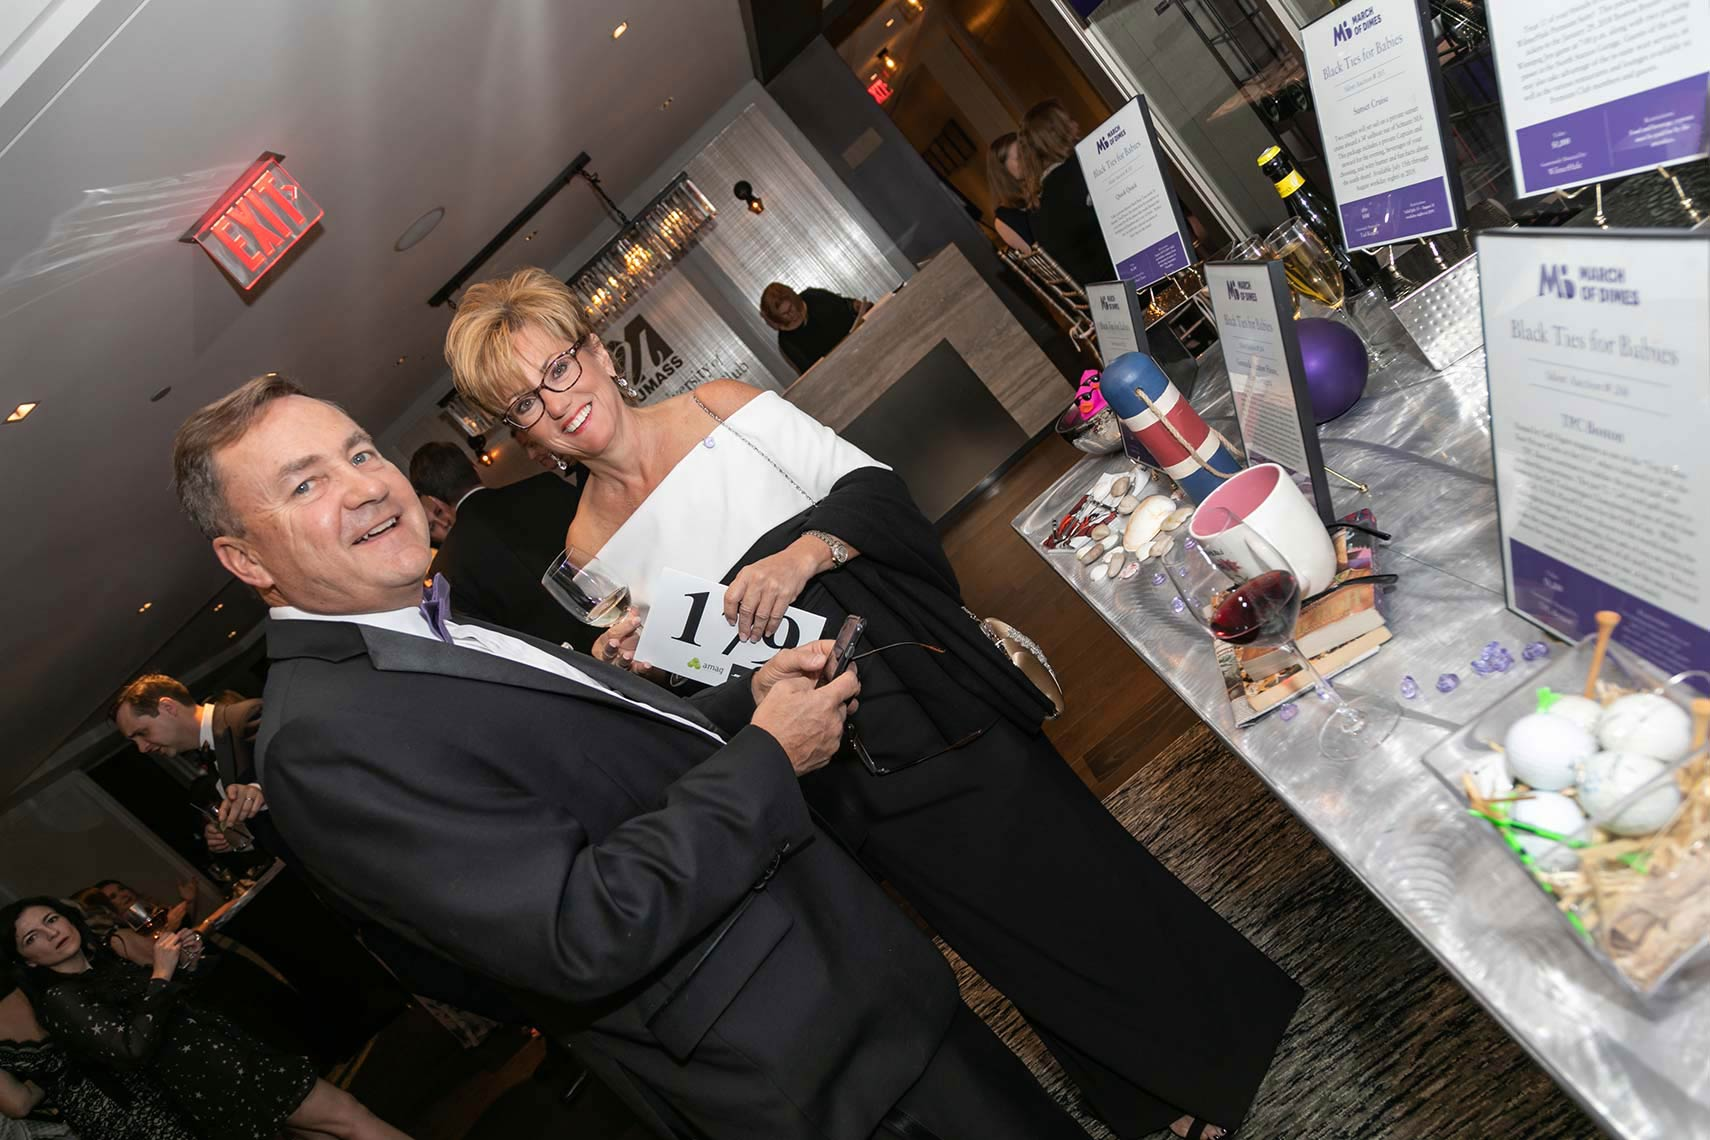 018-A-couple-of-event-attendies-by-the-auction-item-table-at-the-March-of-Dimes-fundraising-gala